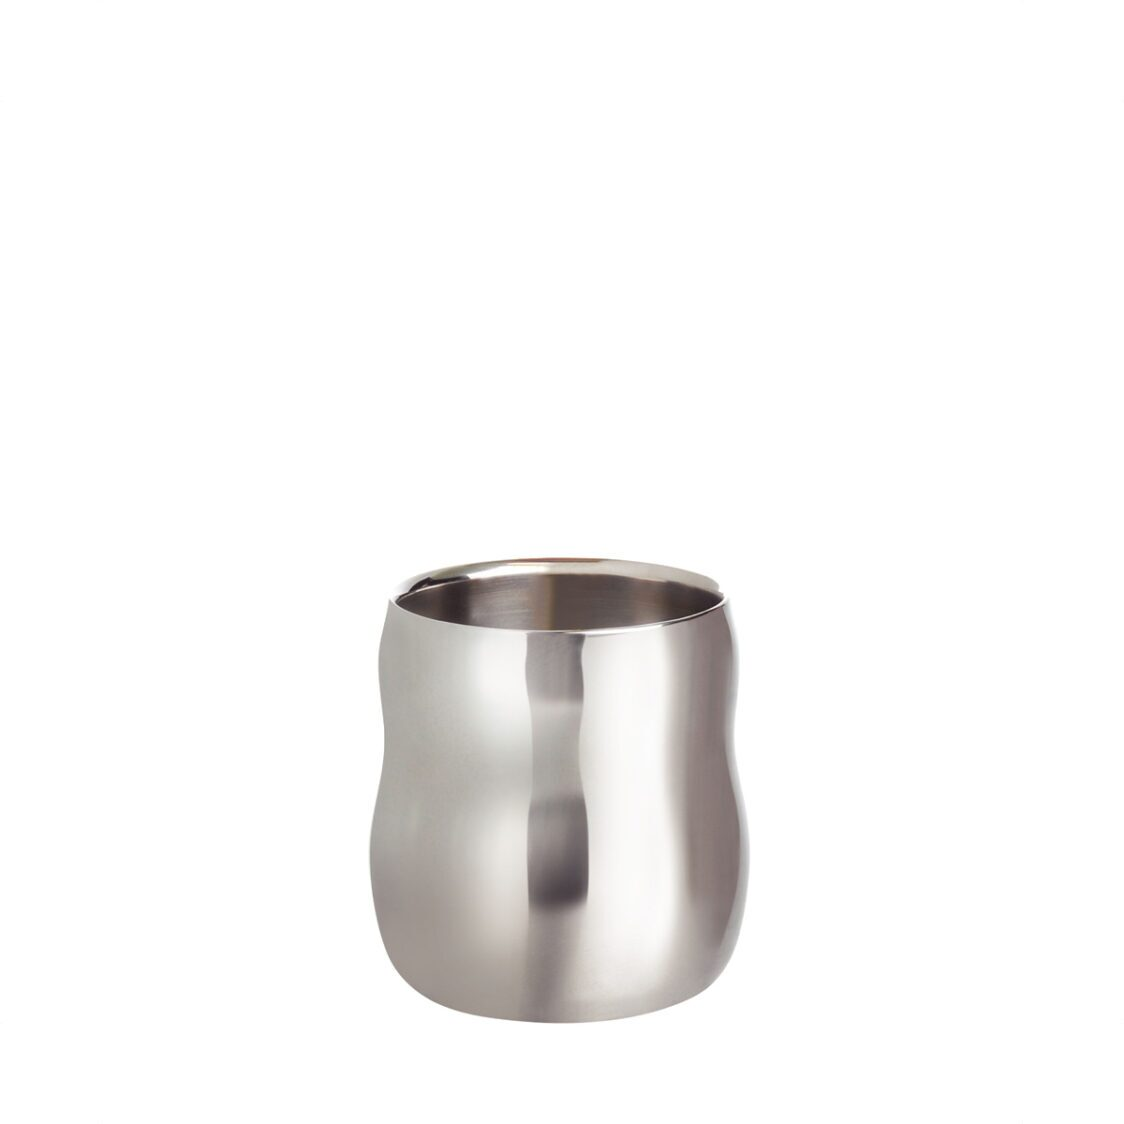 Zebra Stainless Steel Double Wall Tea Cup 75cm